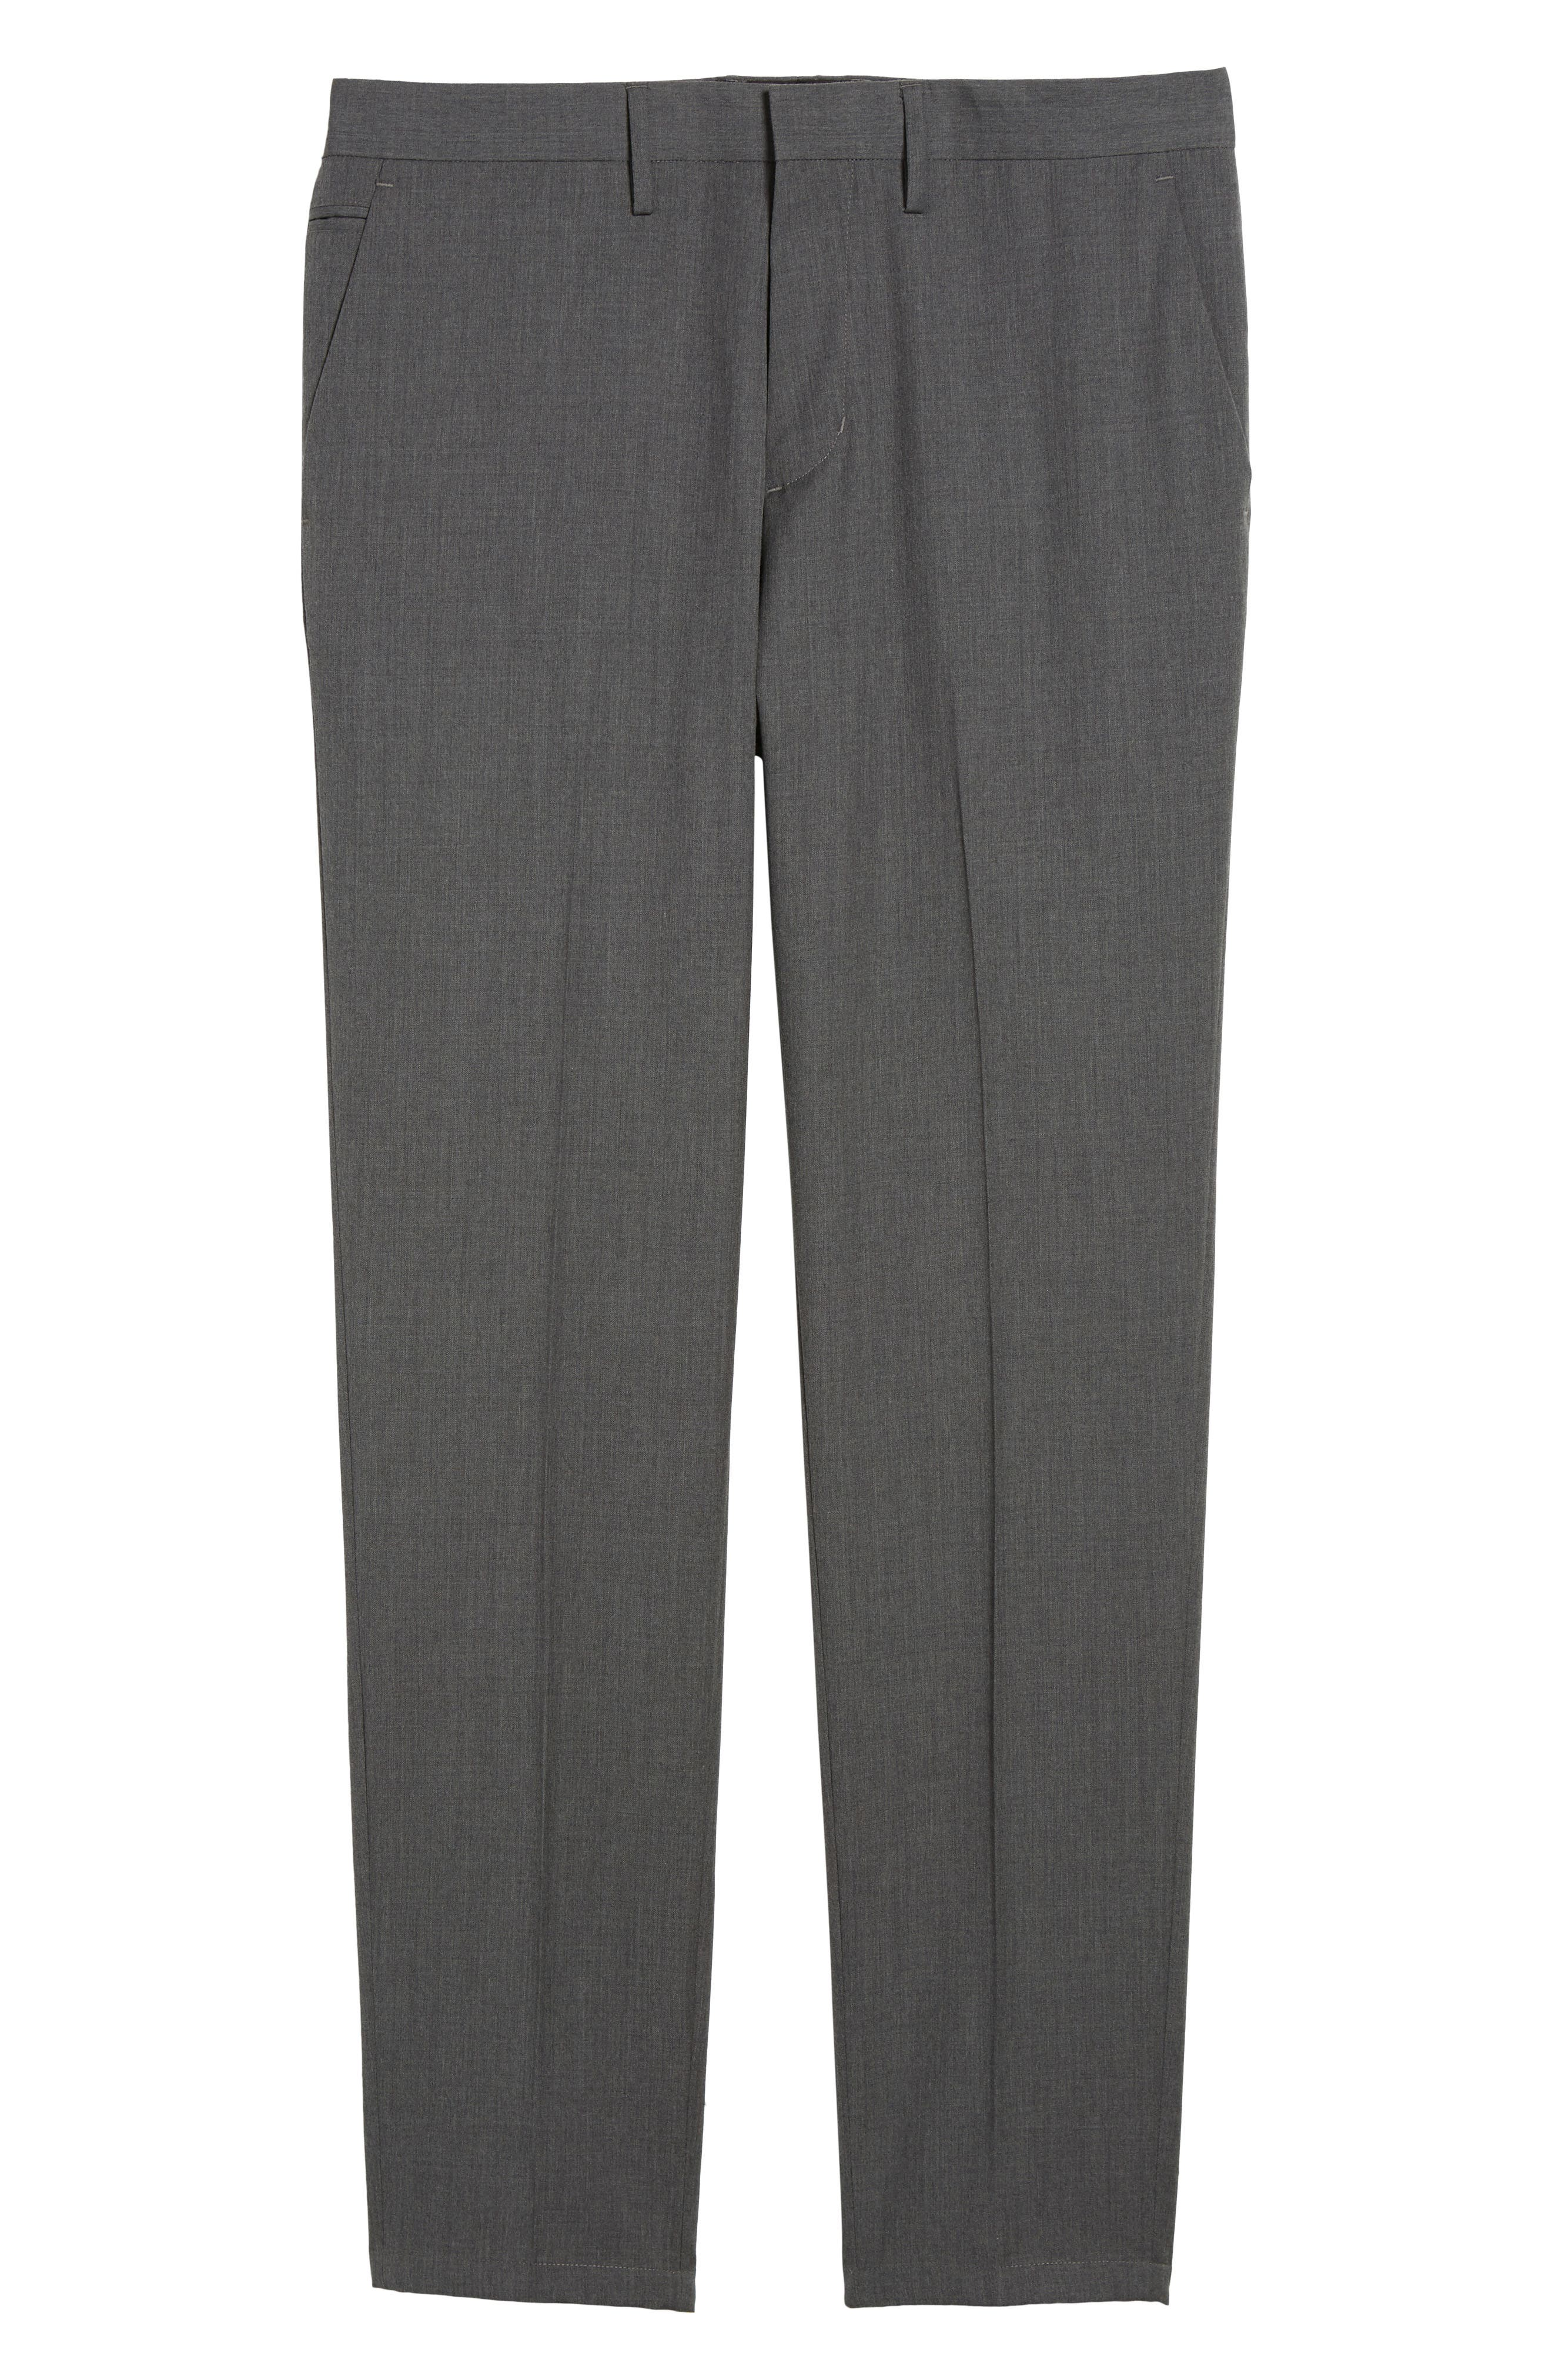 Slim Wool Trousers,                             Alternate thumbnail 5, color,                             Grey Magnet